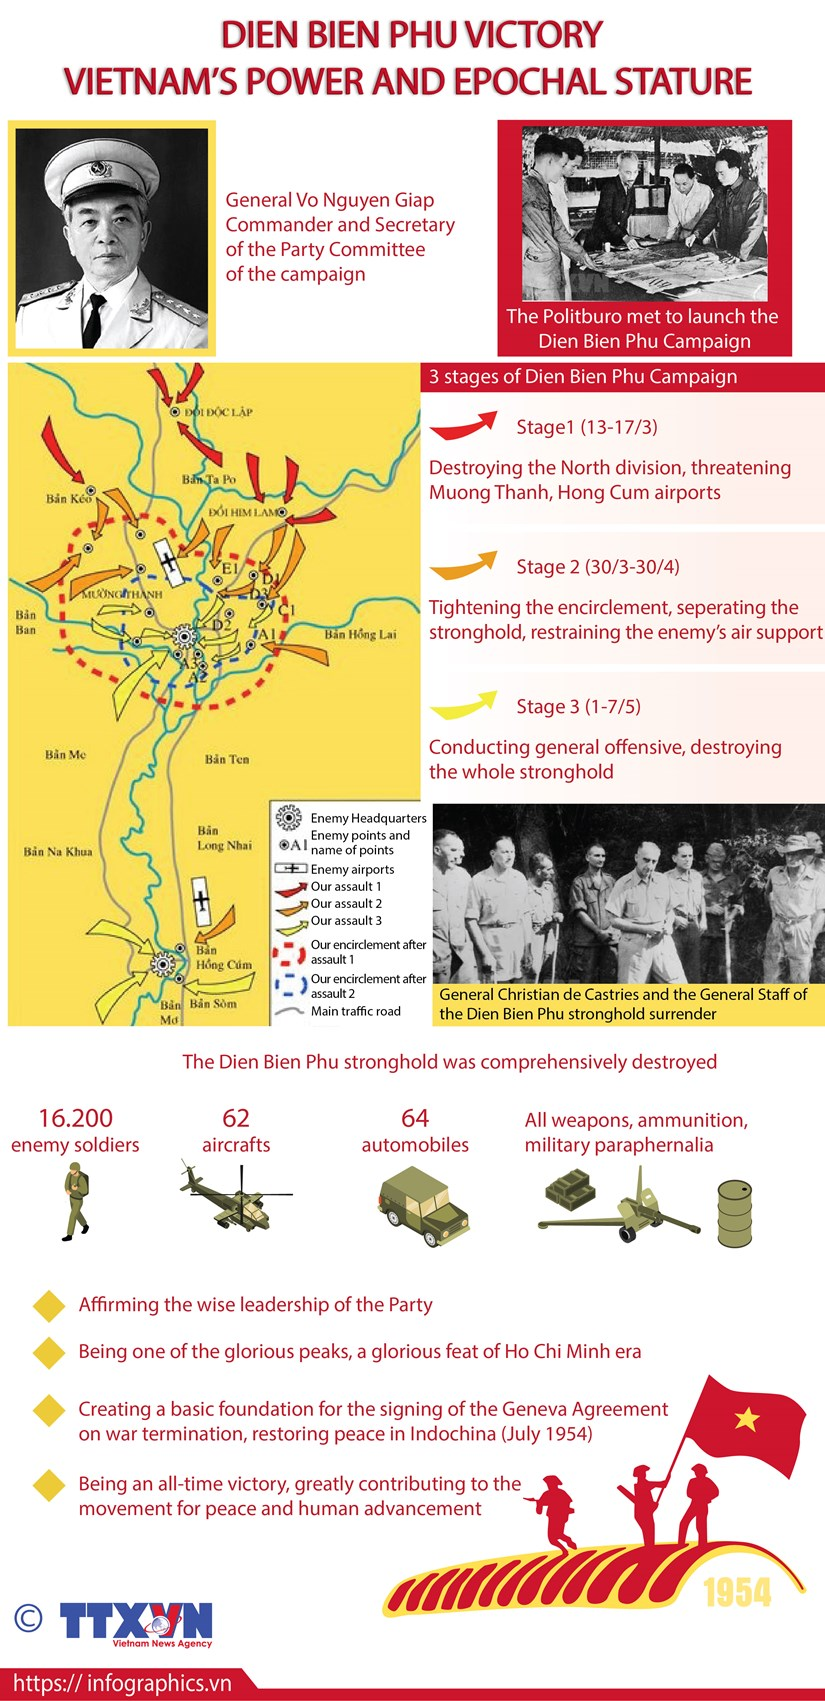 Dien Bien Phu Victory - Vietnam's power and epocal stature hinh anh 1